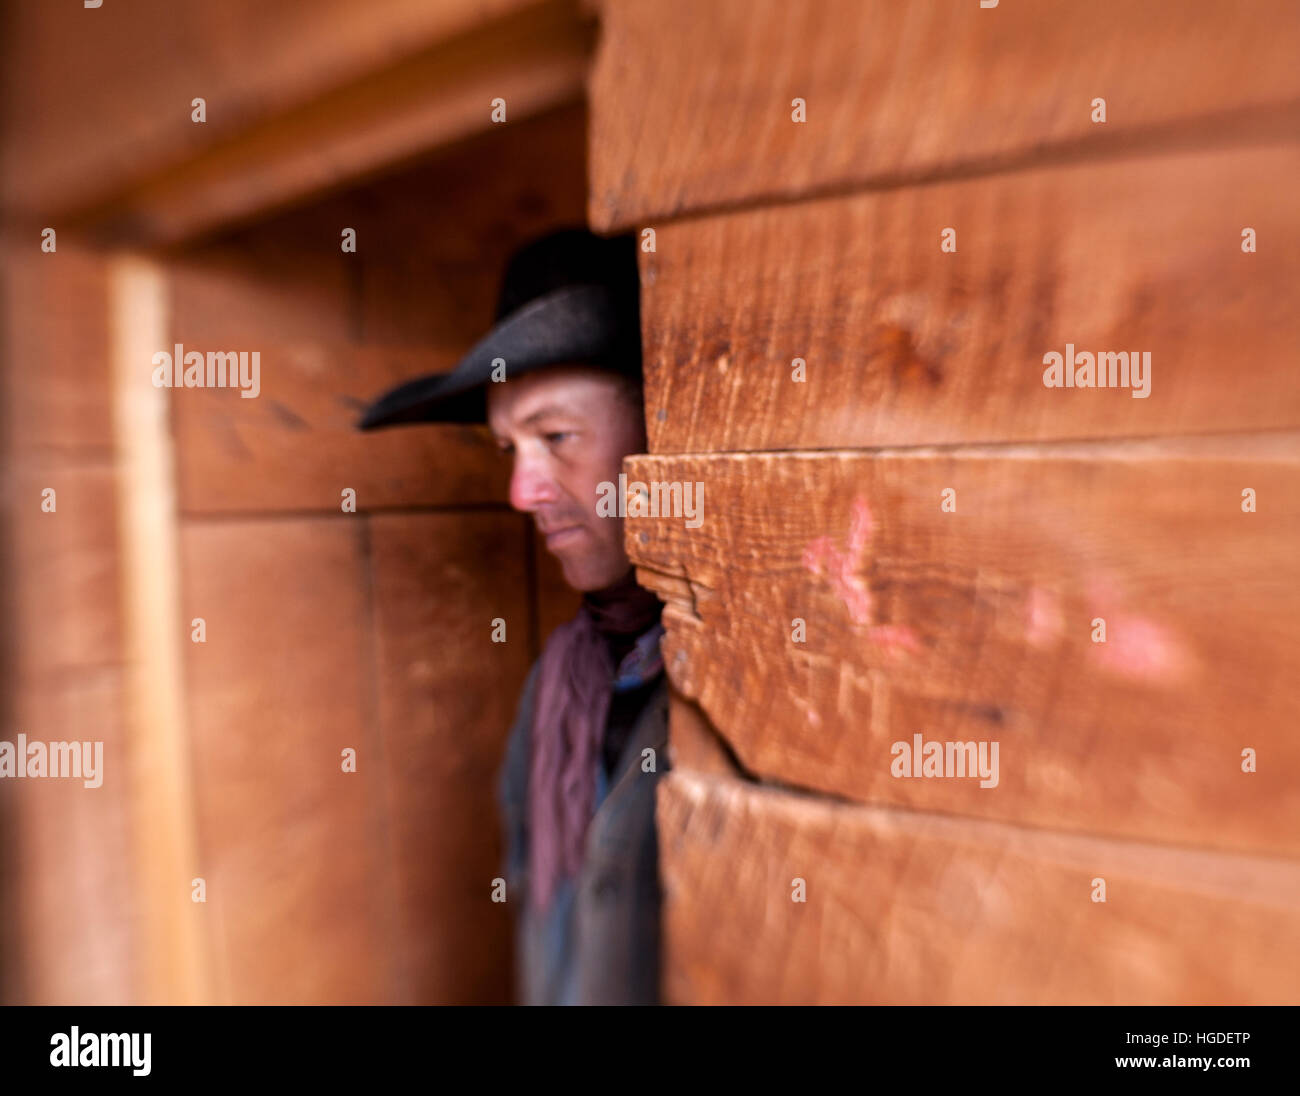 LB00141-00...WYOMING - Barry Crago in the barn on the Willow Creek Ranch.  MR# C11 Stock Photo